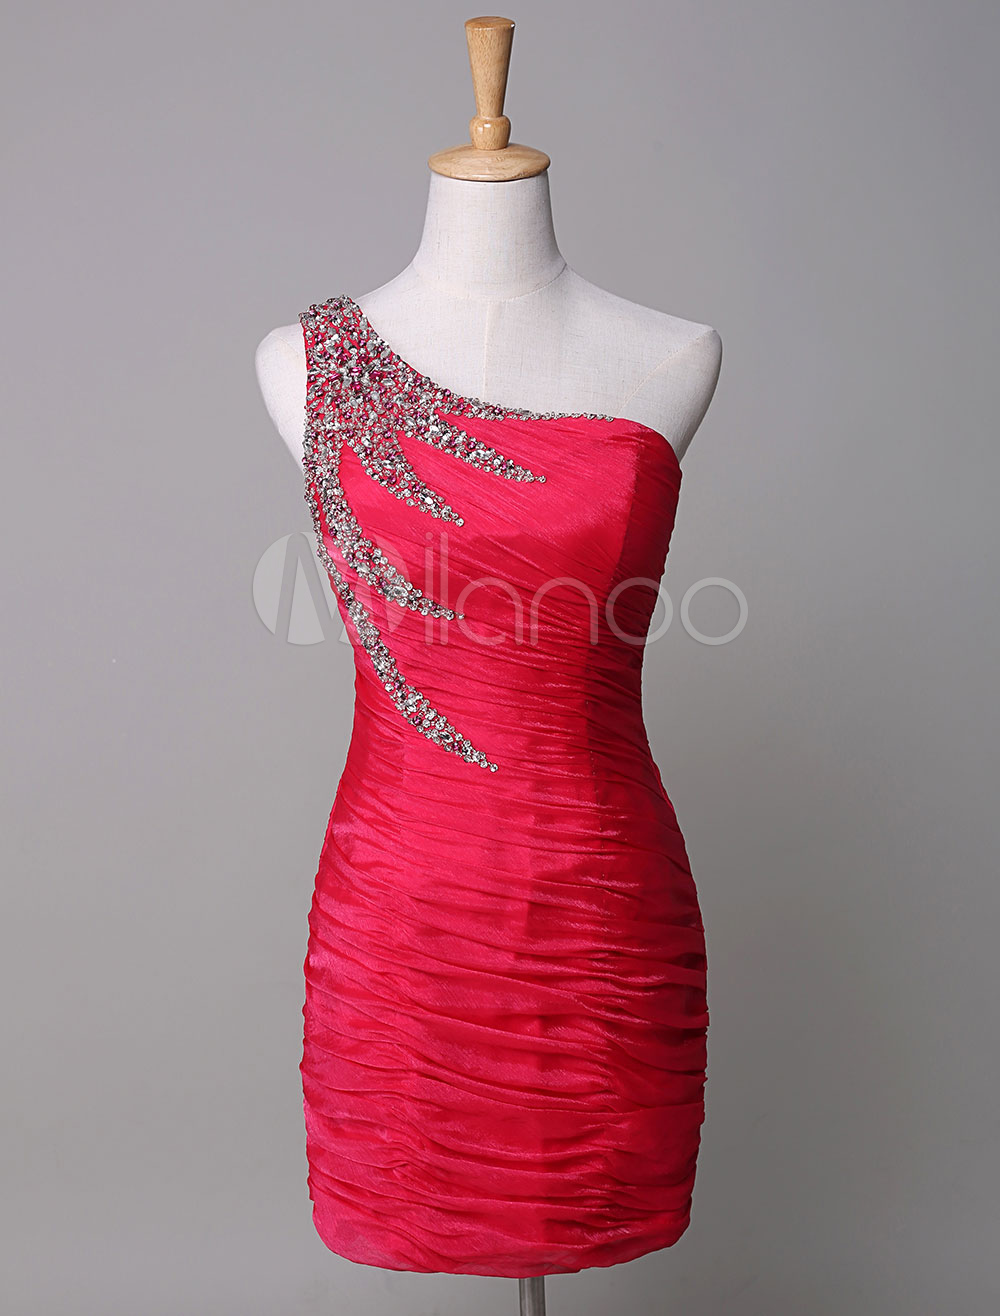 One-Shoulder Cocktail Dress Red Chiffon Pleated Sequin Mermaid Mini Party Dress (Wedding Cheap Party Dress) photo